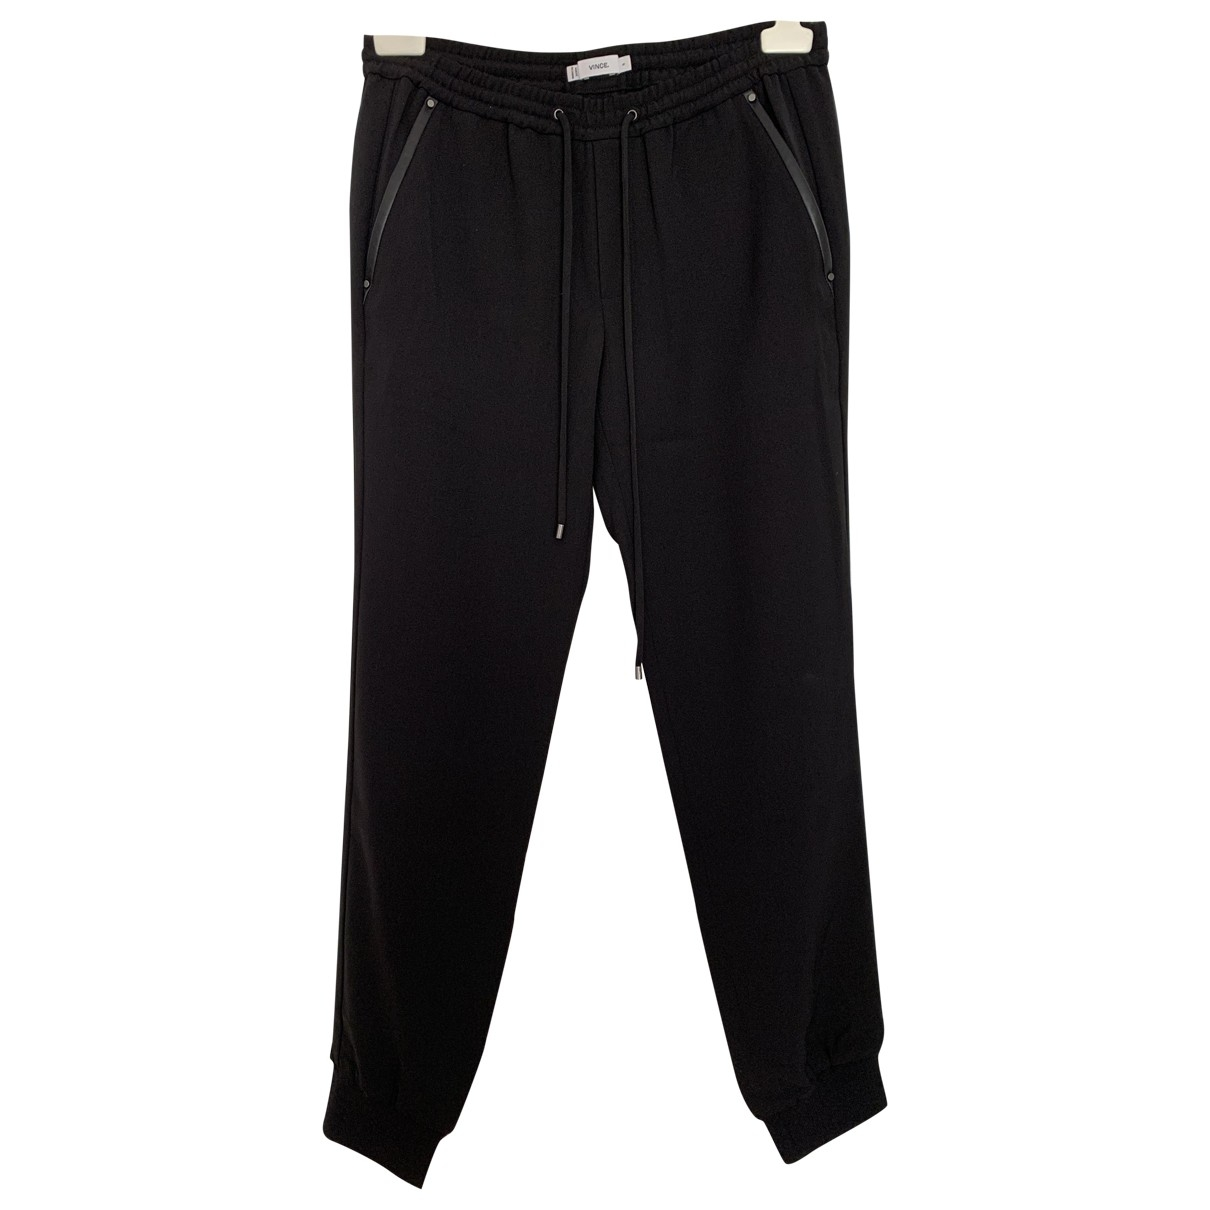 Vince \N Black Trousers for Women S International